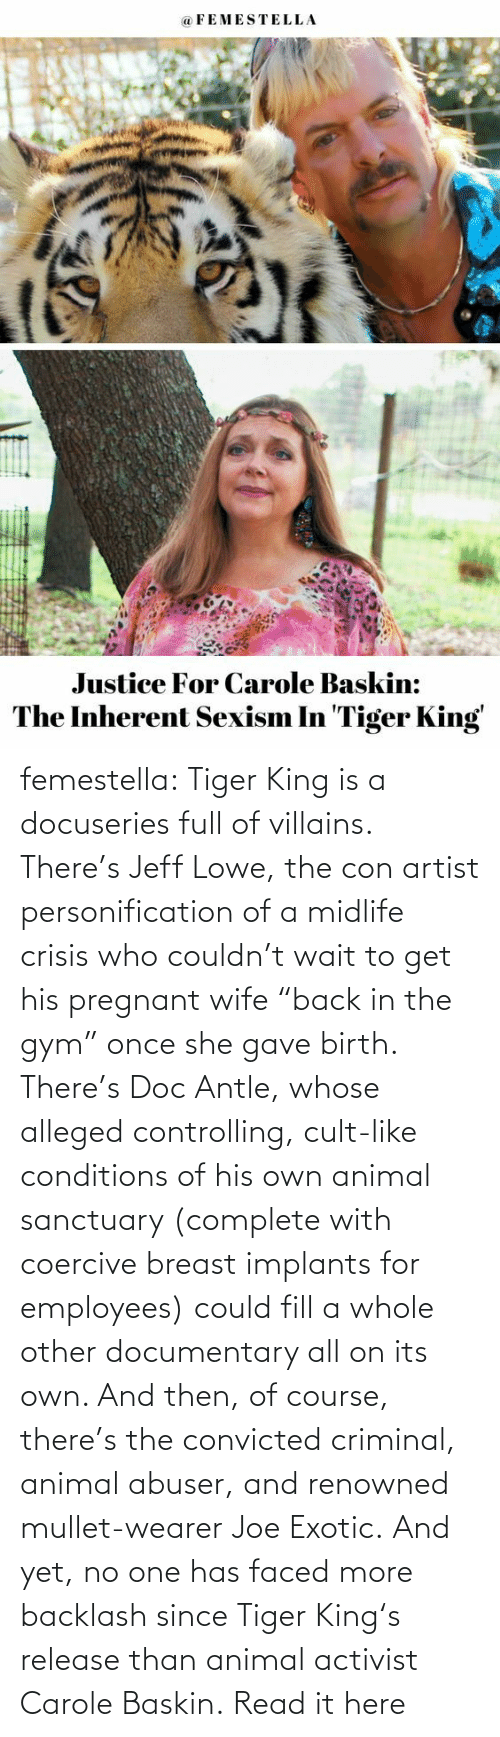 "Gave: femestella: Tiger King is a docuseries full of villains. There's Jeff Lowe, the con artist personification of a midlife crisis who couldn't wait to get his pregnant wife ""back in the gym"" once she gave birth. There's Doc Antle, whose alleged controlling, cult-like conditions of his own animal sanctuary (complete with coercive breast implants for employees) could fill a whole other documentary all on its own. And then, of course, there's the convicted criminal, animal abuser, and renowned mullet-wearer Joe Exotic. And yet, no one has faced more backlash since Tiger King's release than animal activist Carole Baskin. Read it here"